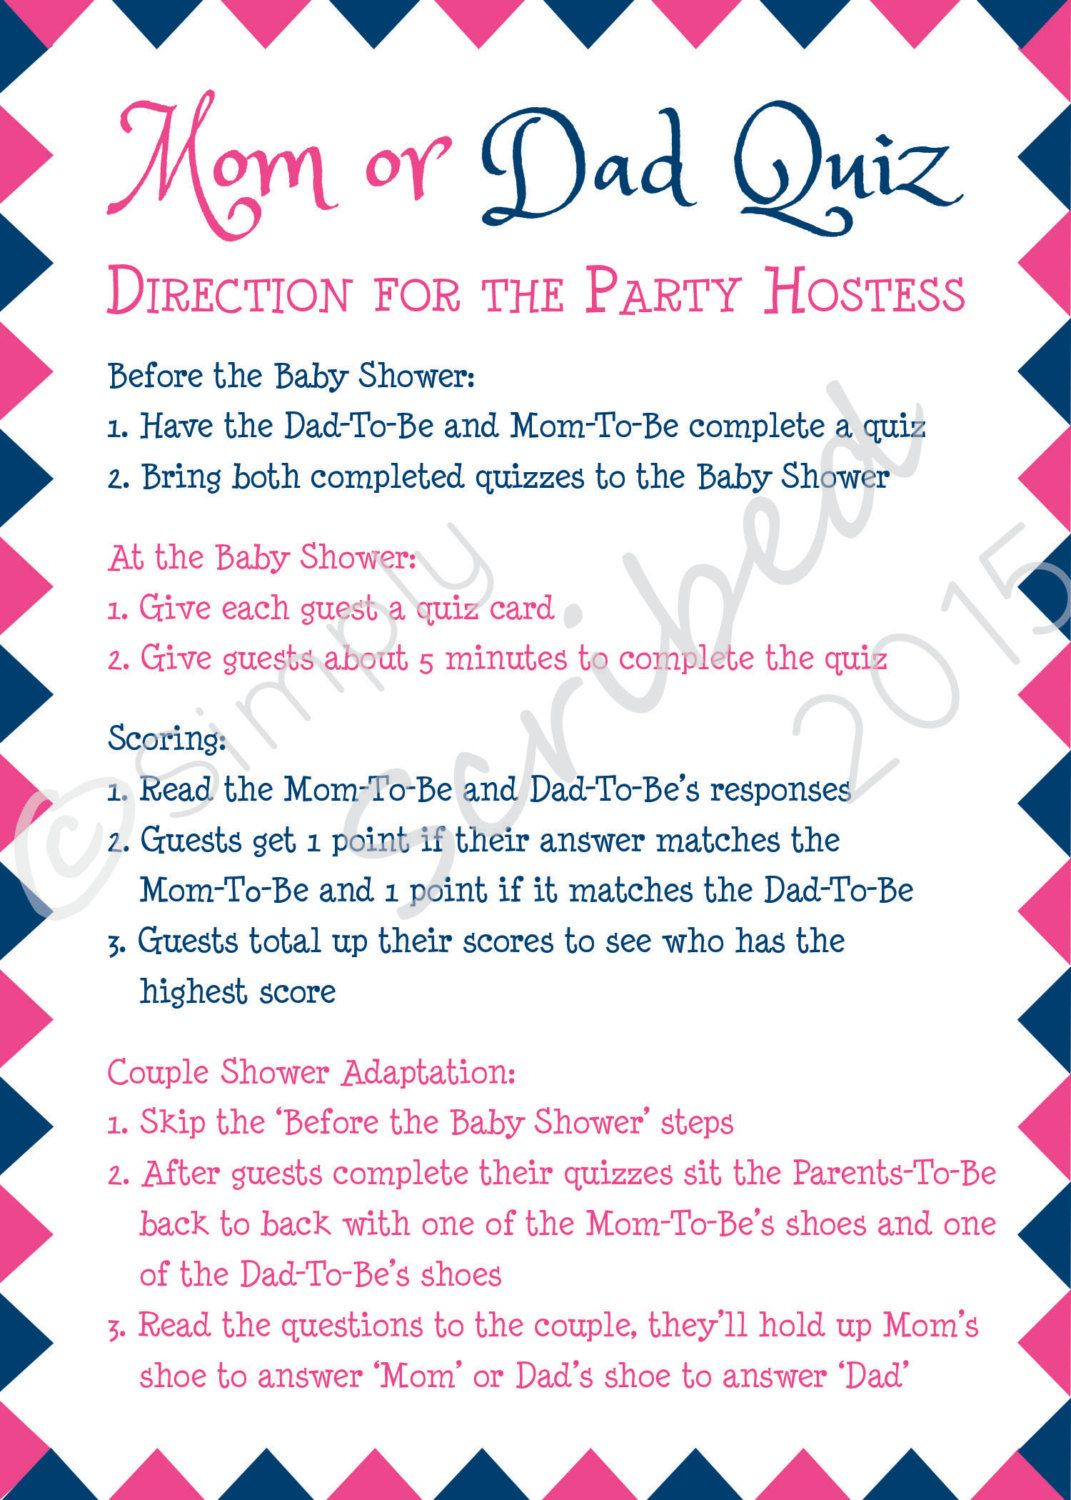 Lovely Mom Or Dad Trivia Makes A Fun And Easy Game For Any Baby Shower. This